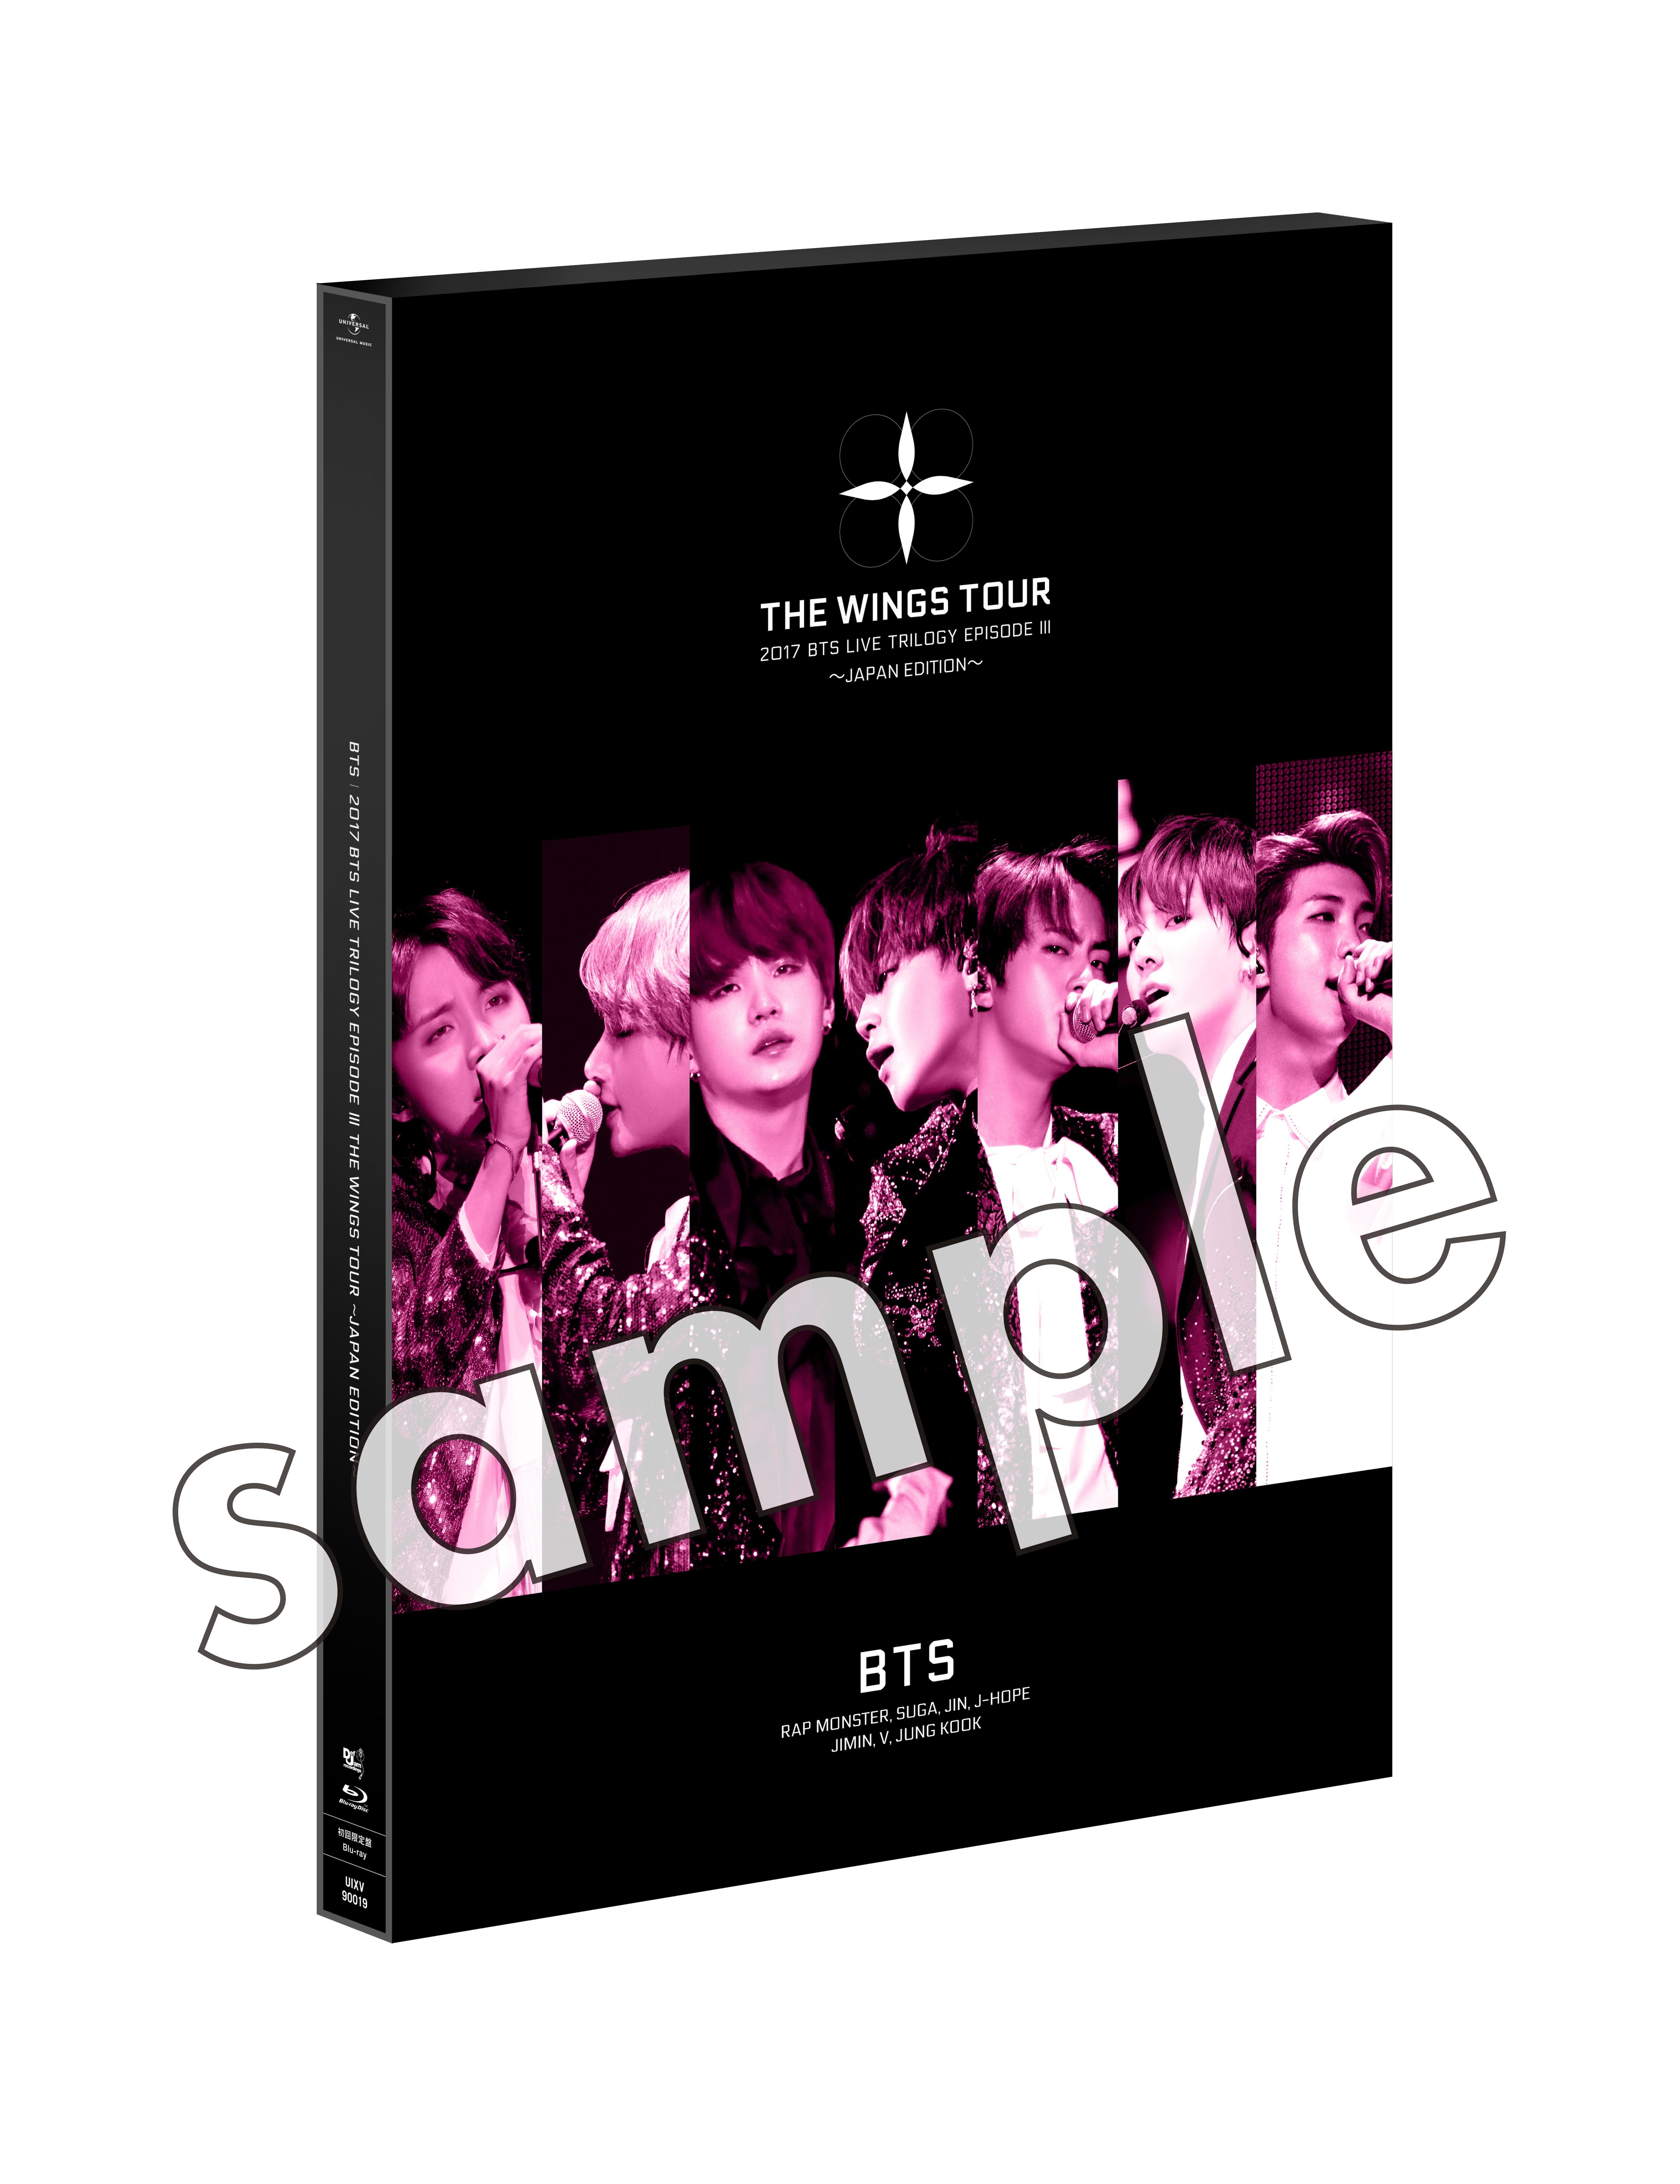 BTS_BD_H1se_1114_s_sample